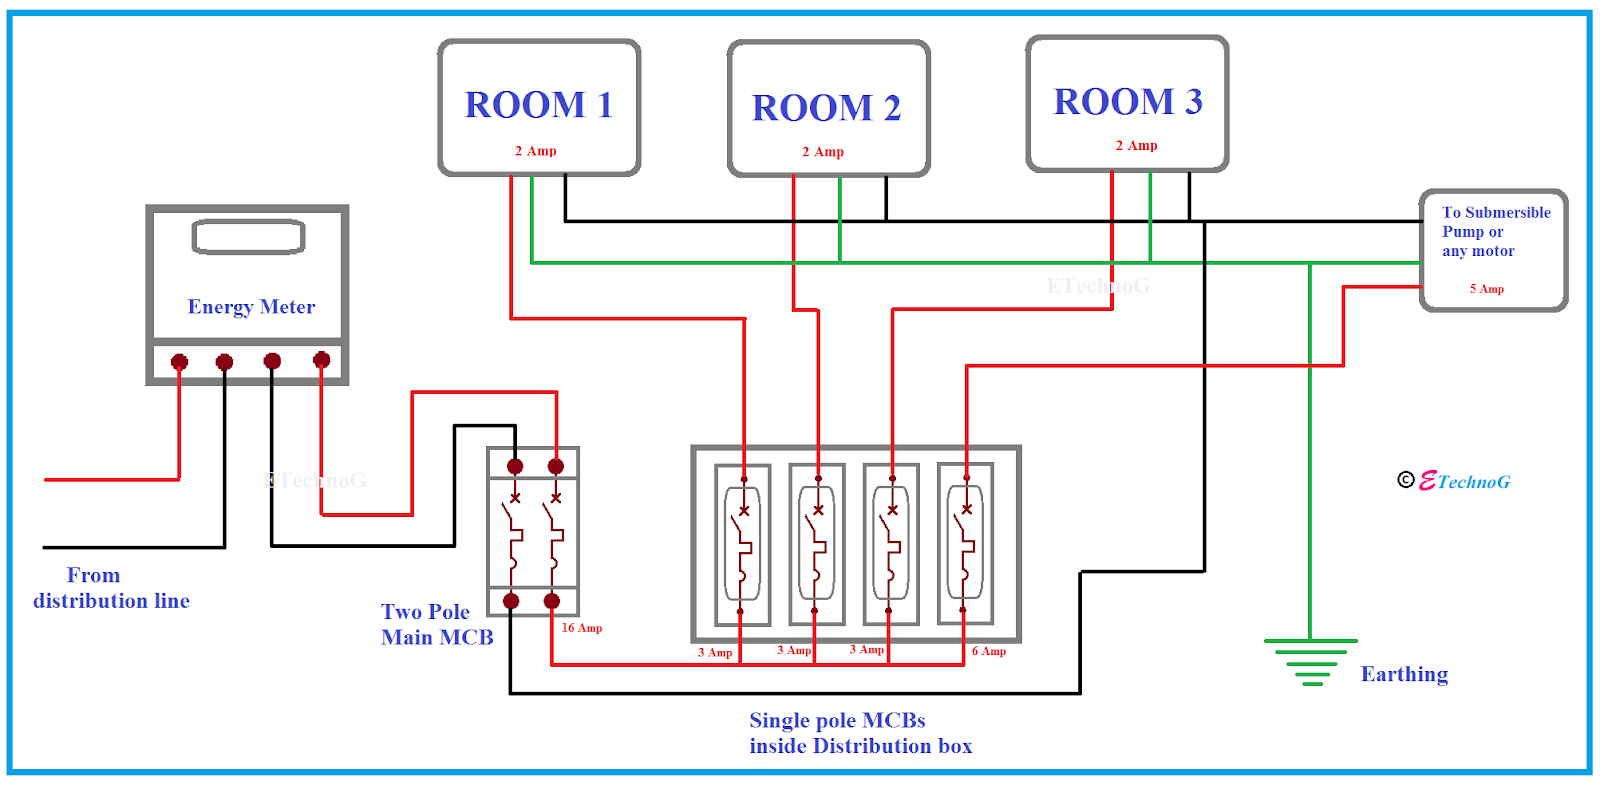 hight resolution of wiring diagram power of a room everything wiring diagram wiring diagram power of a room